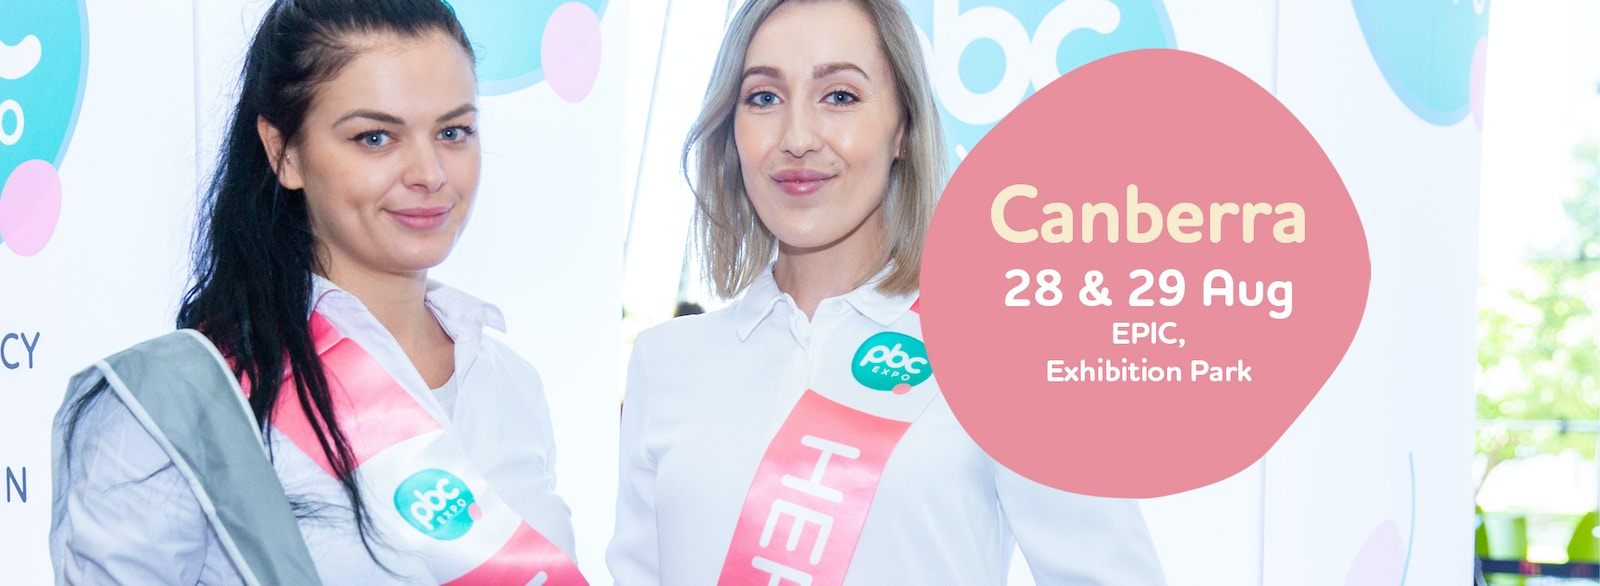 Image of two workers at expo with text box that reads Canberra, 28th and 29th August, EPIC, Exhibition Park